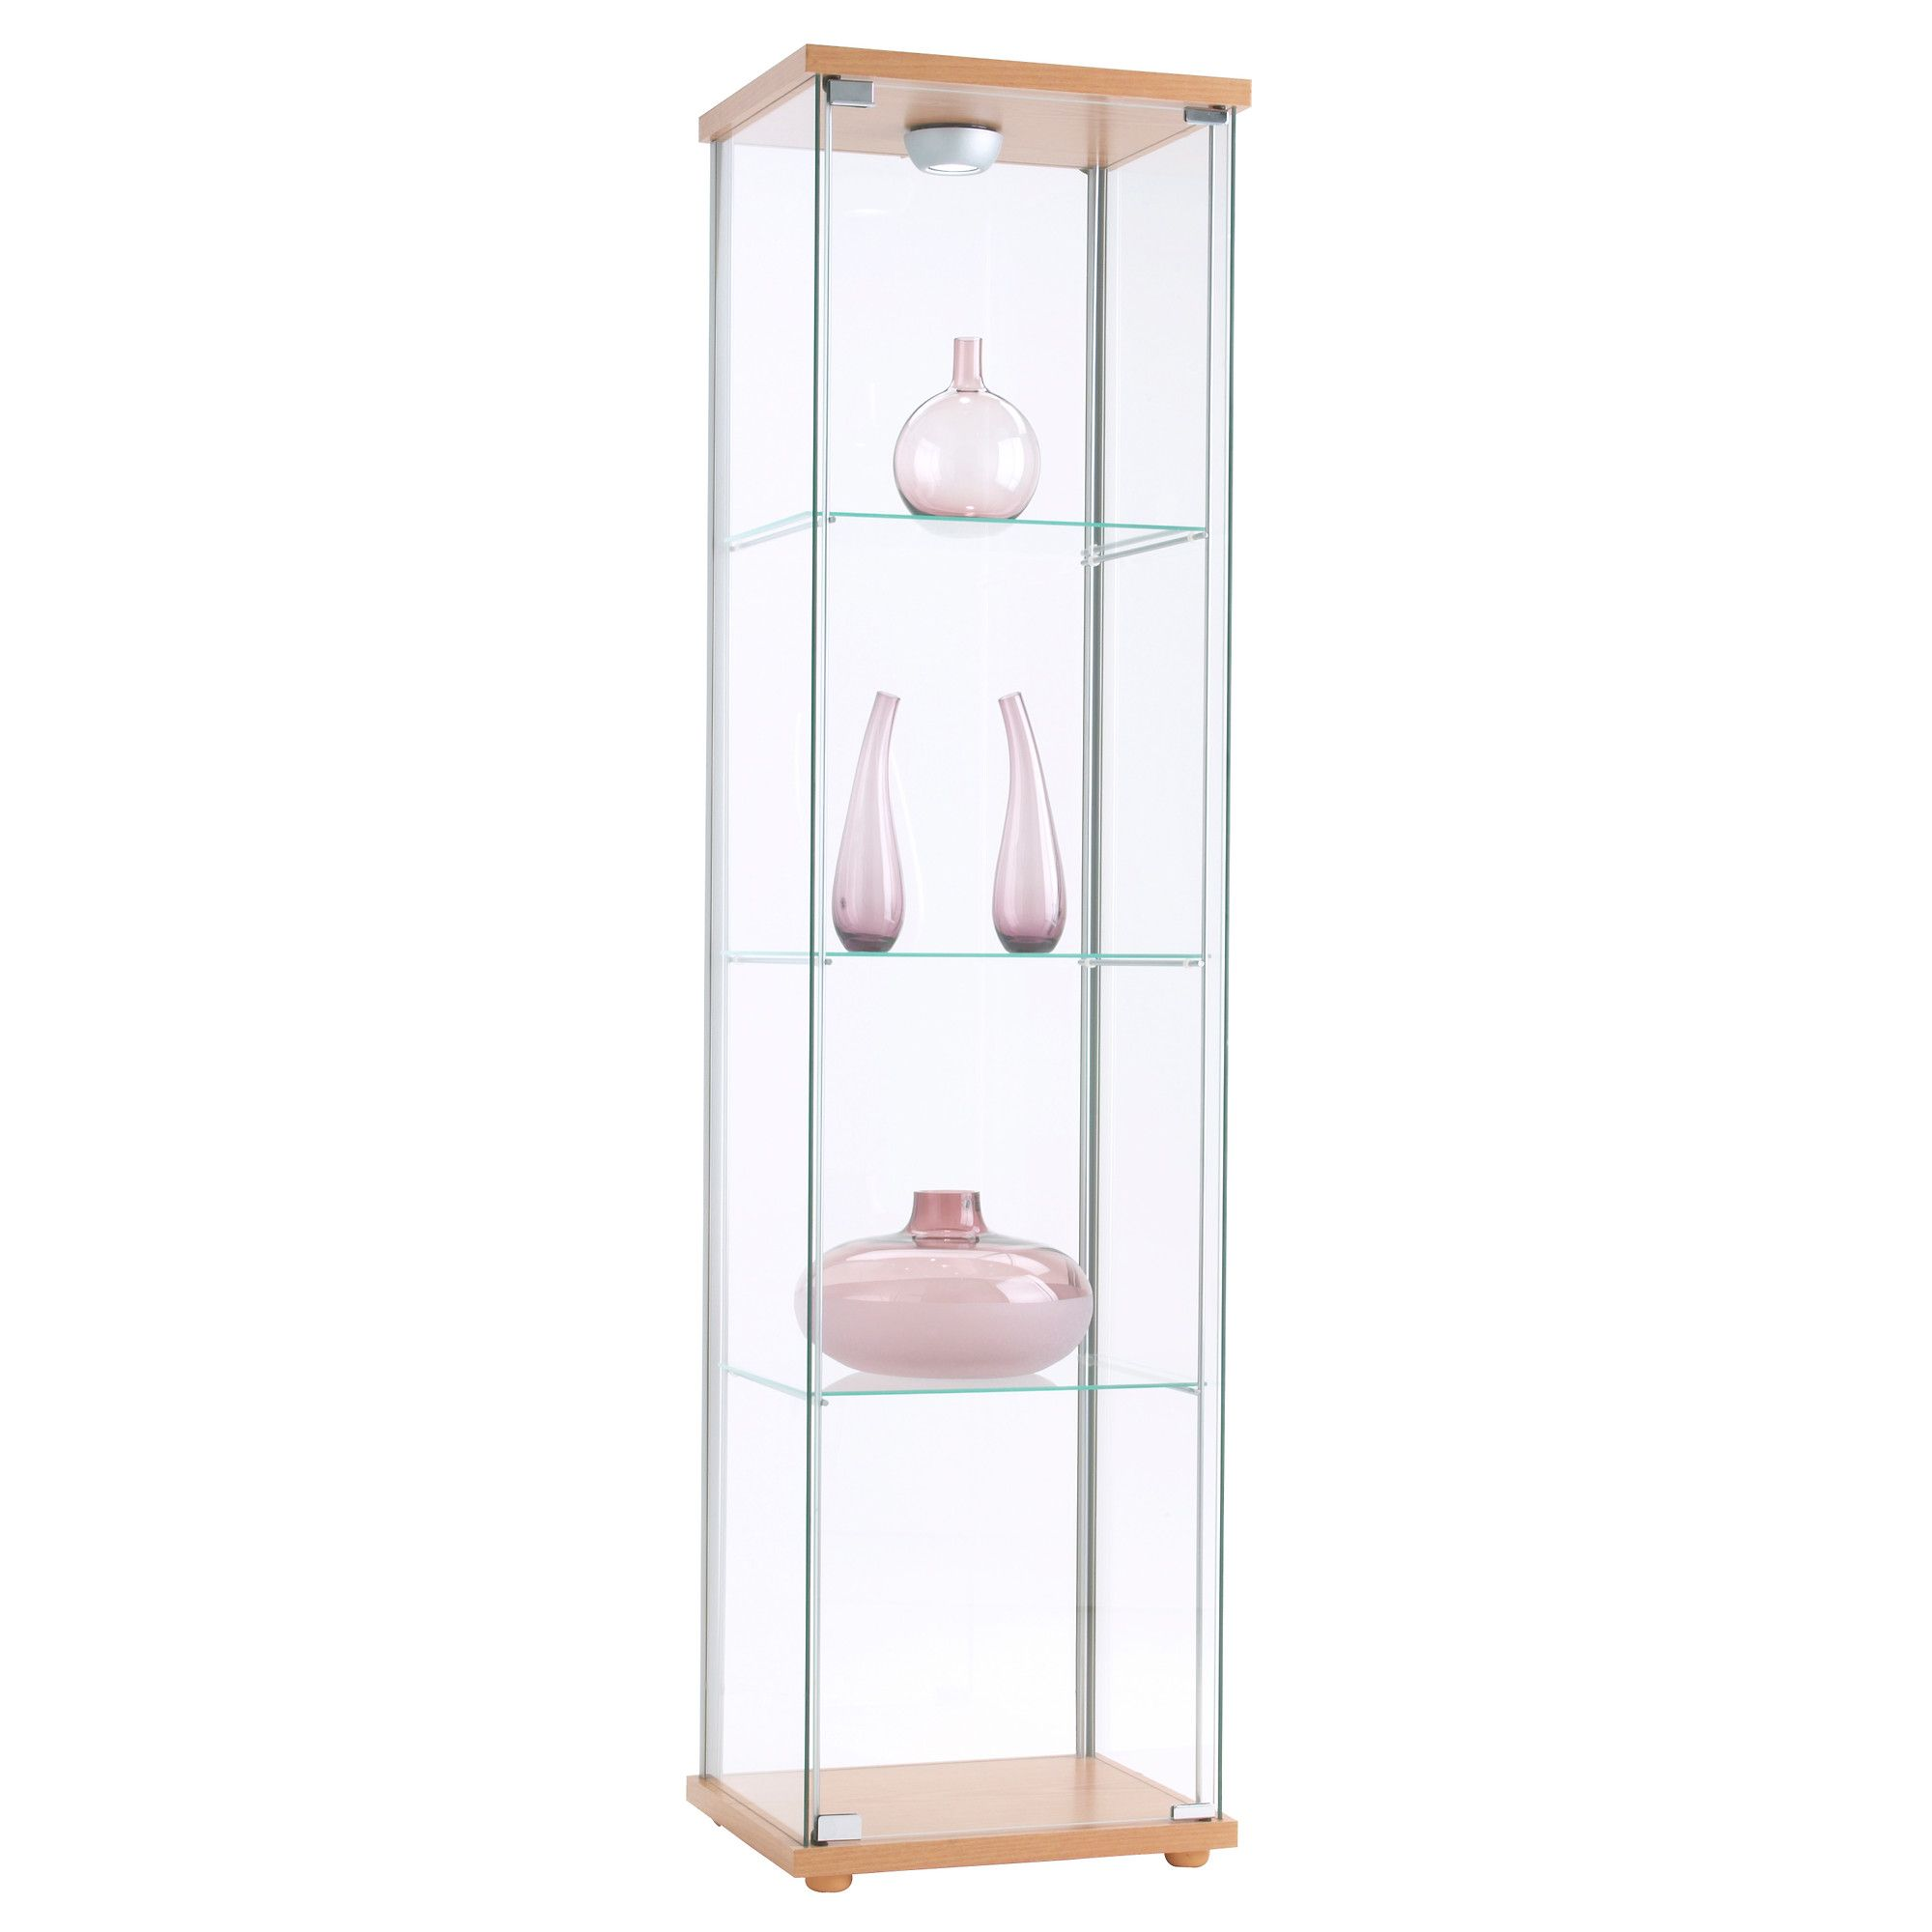 Detolf Vitrine Detolf Glass Door Cabinet Black Brown For The Home Display